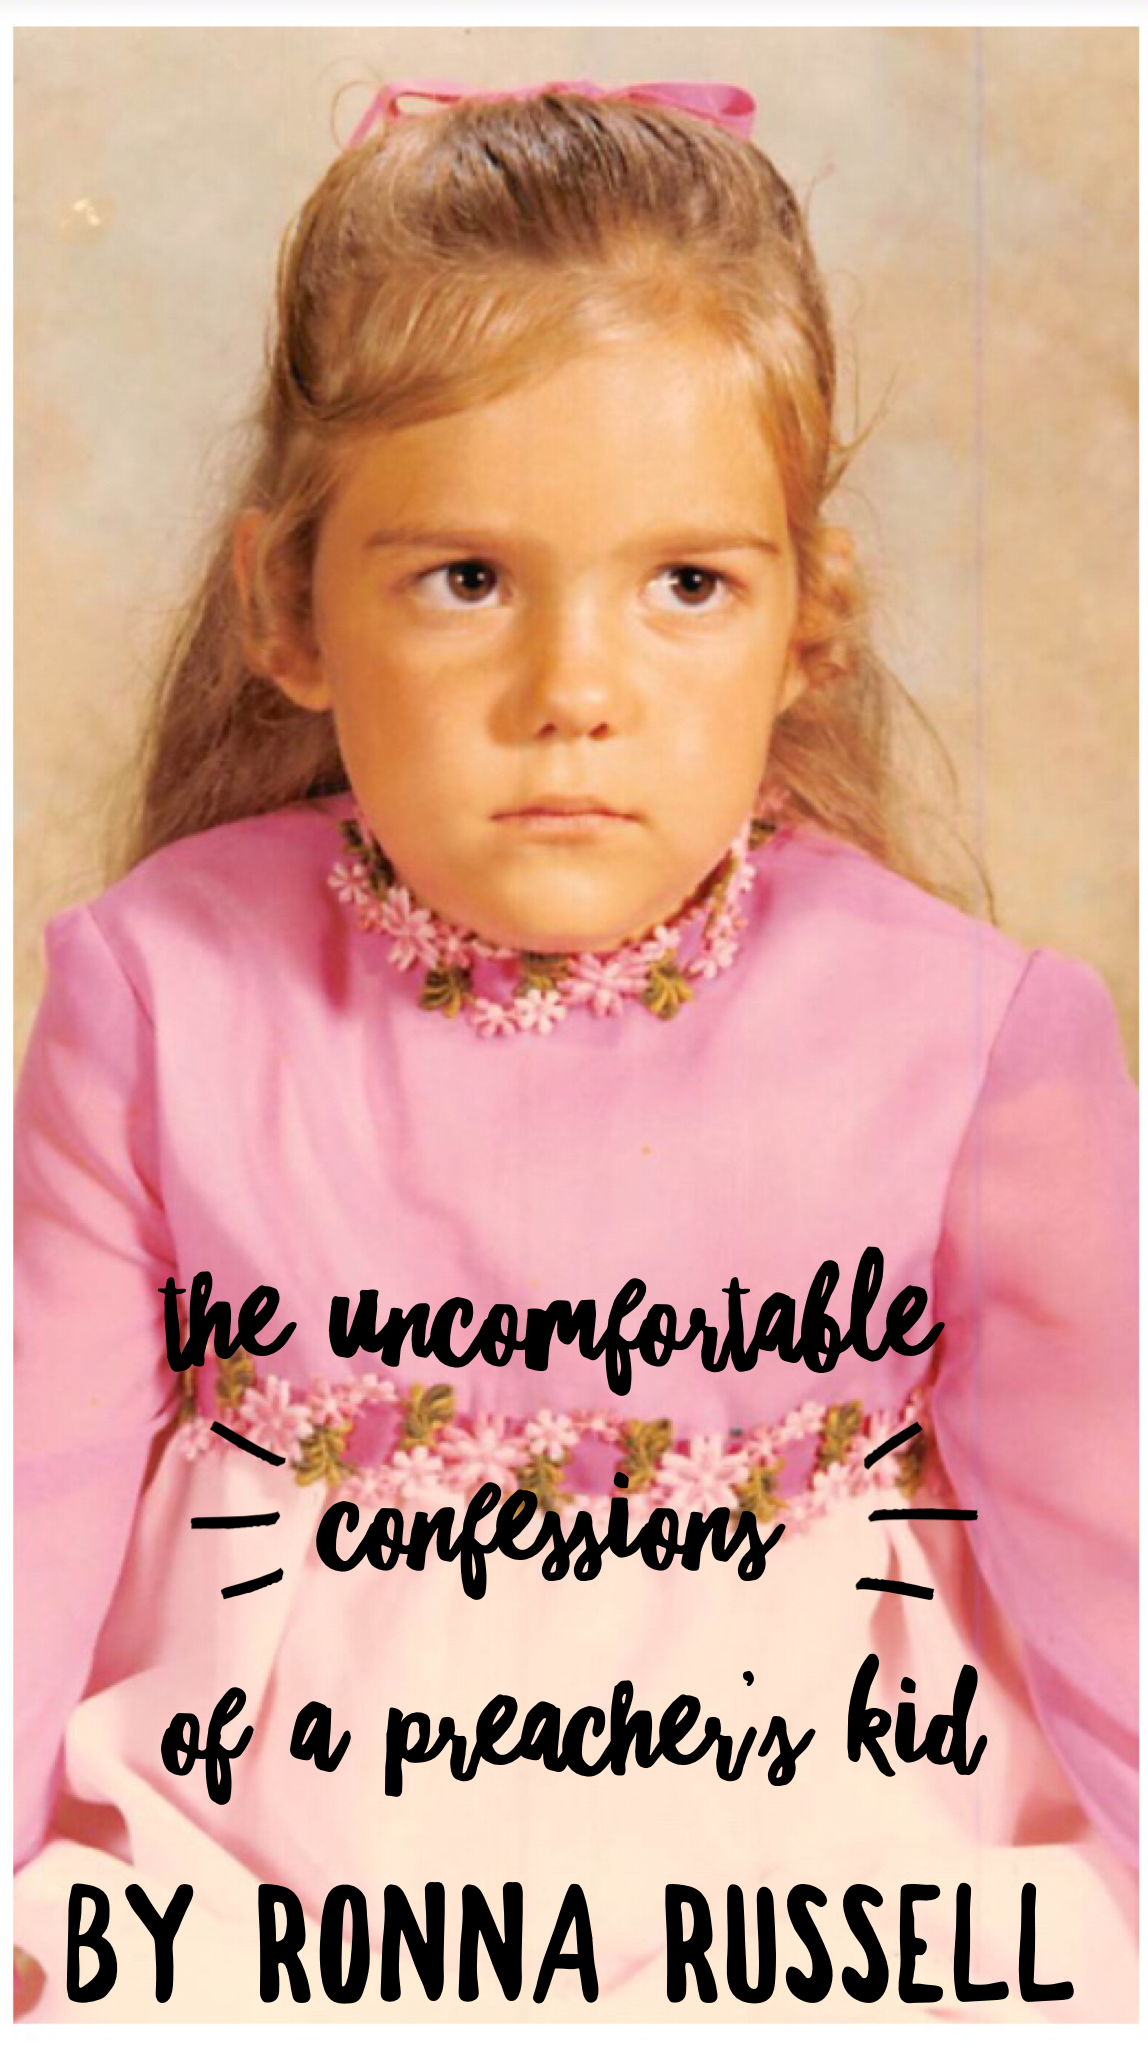 The Uncomfortable Confessions of a Preacher's Kid